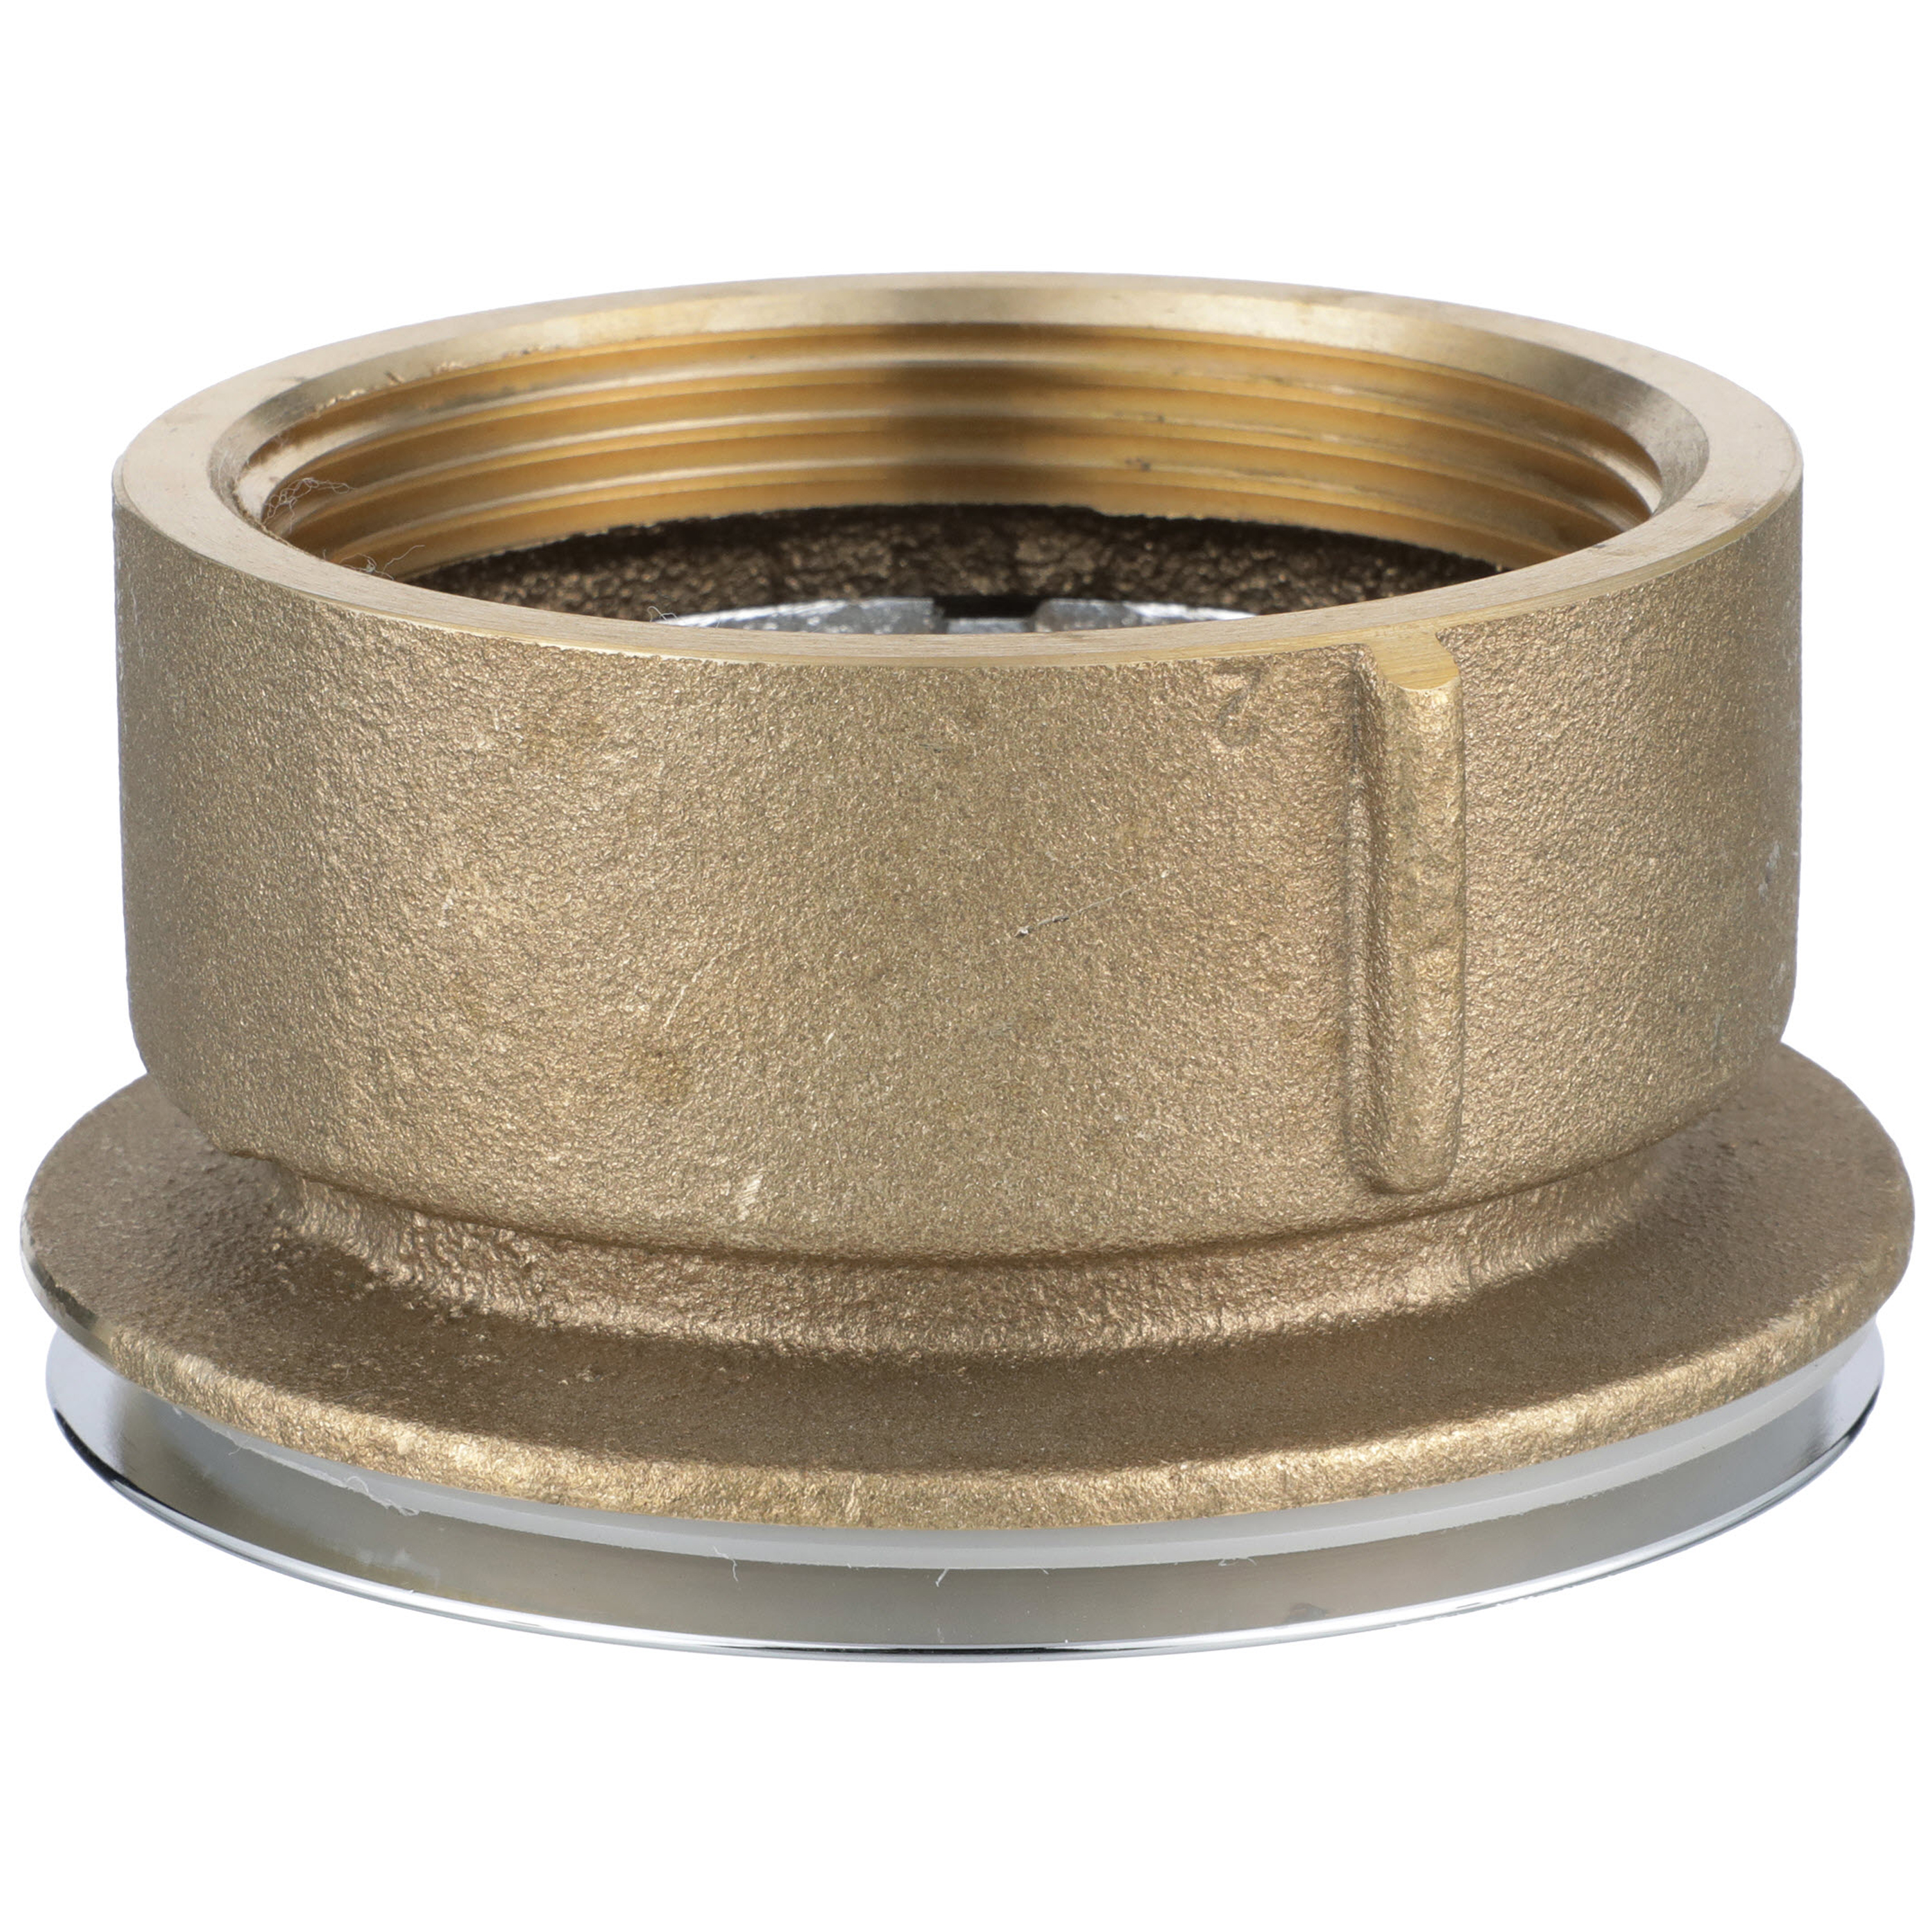 3 in drain only for z5850 mop sink